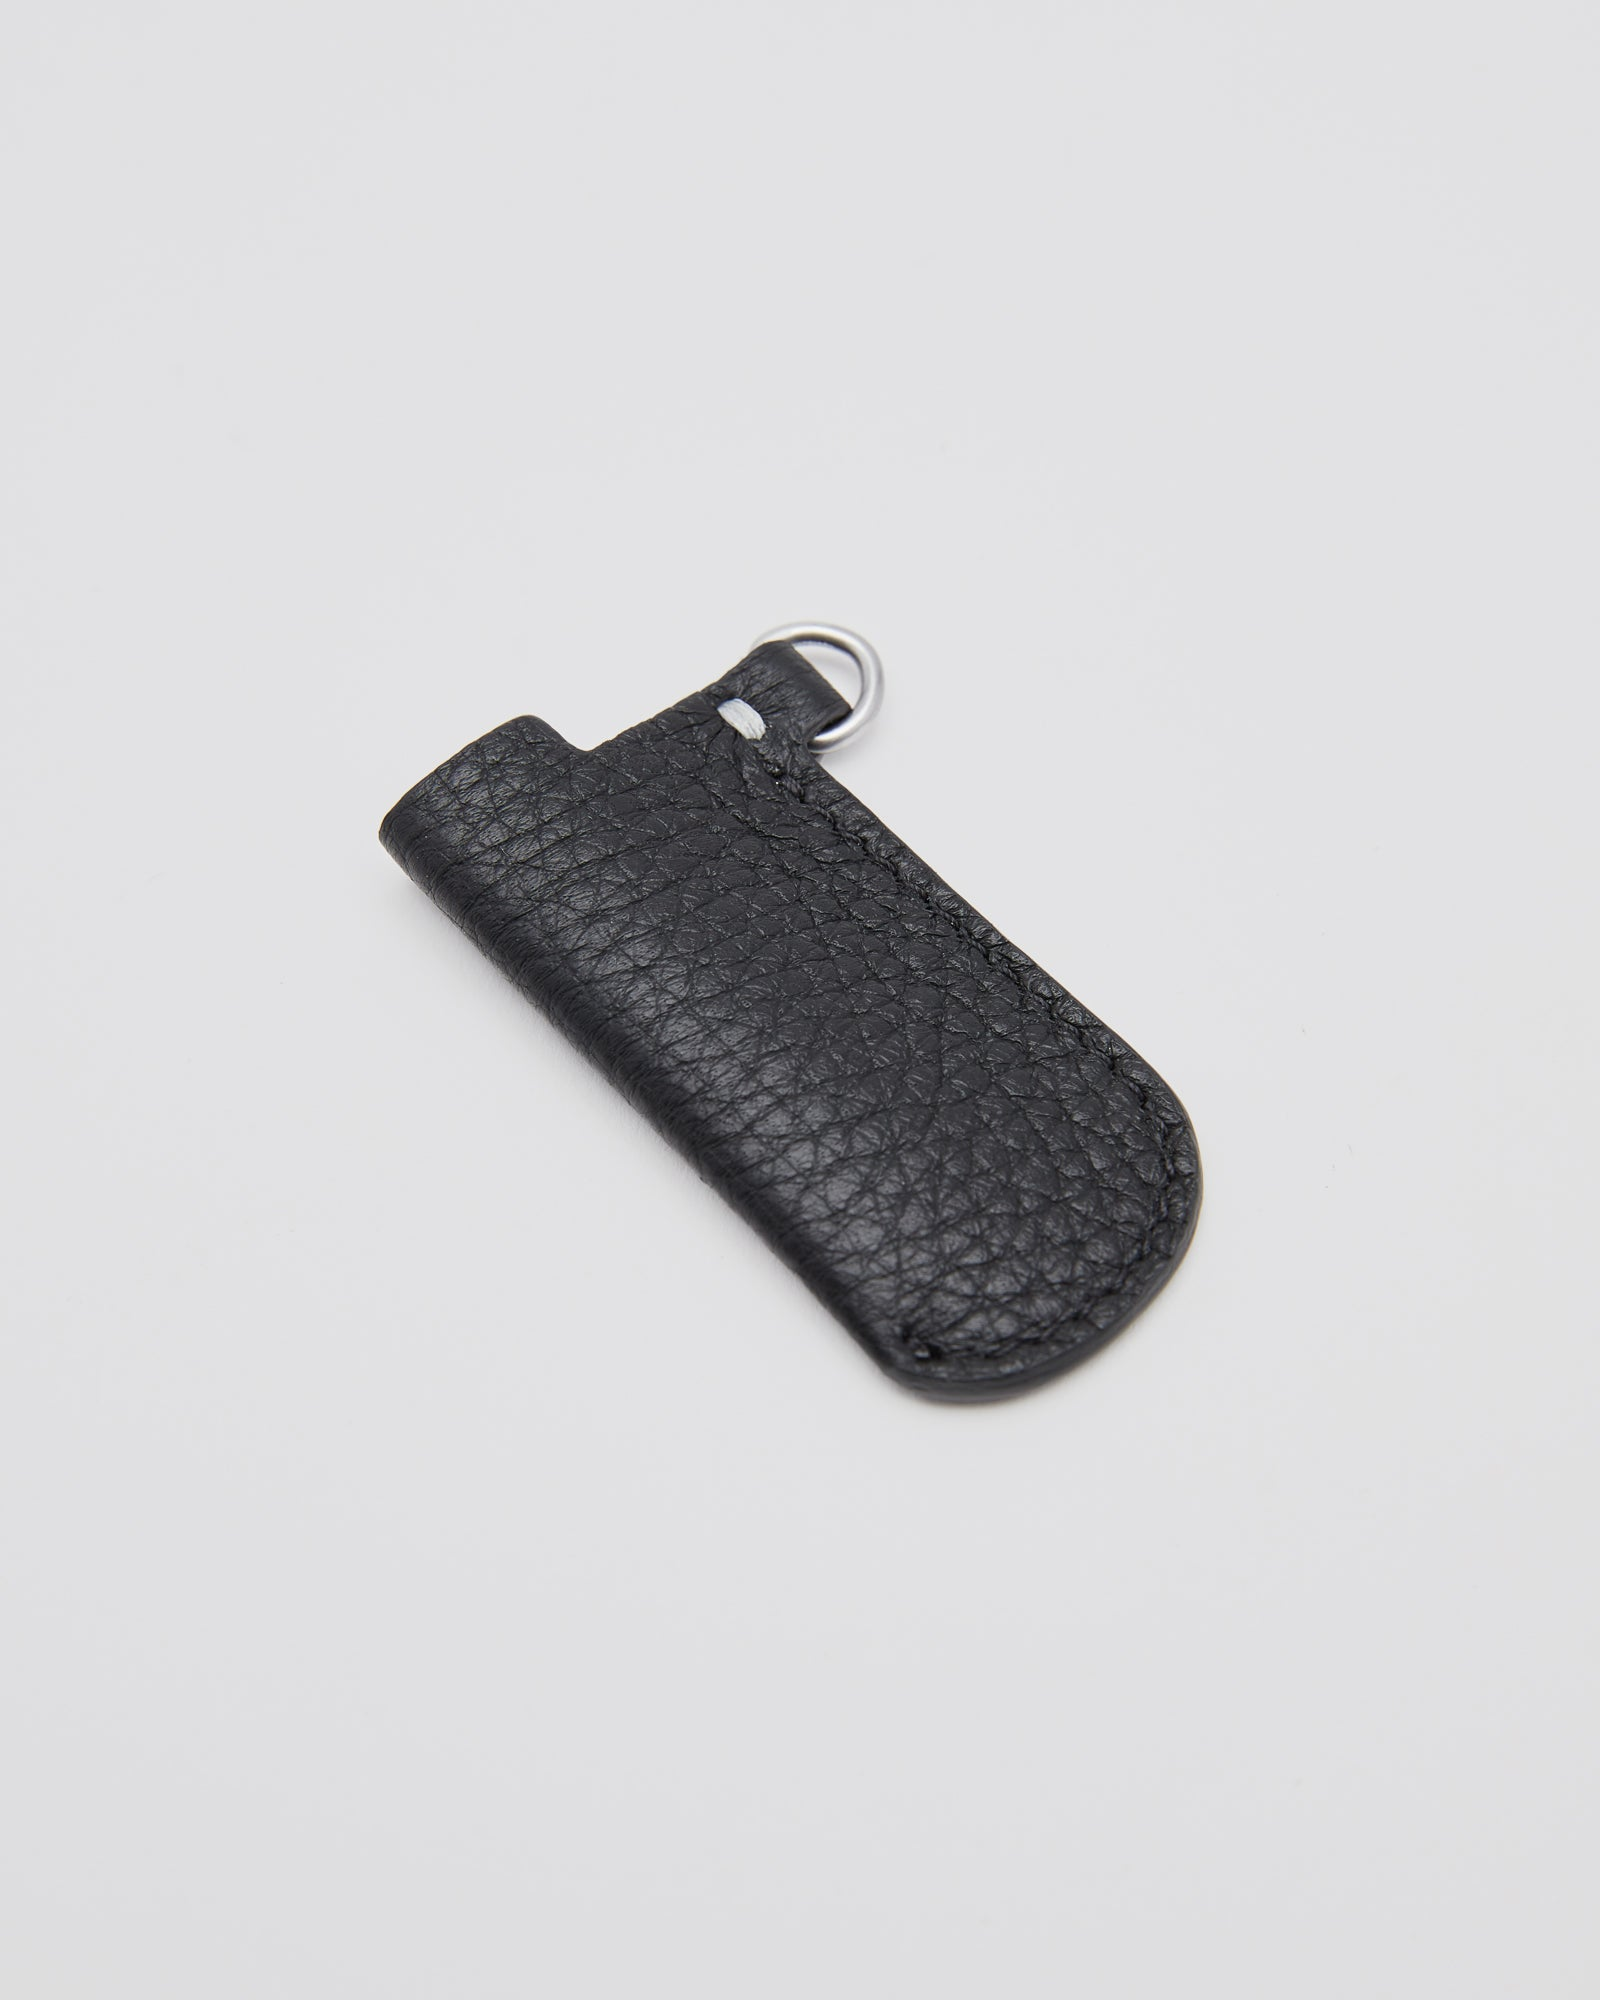 Lighter Case in Black